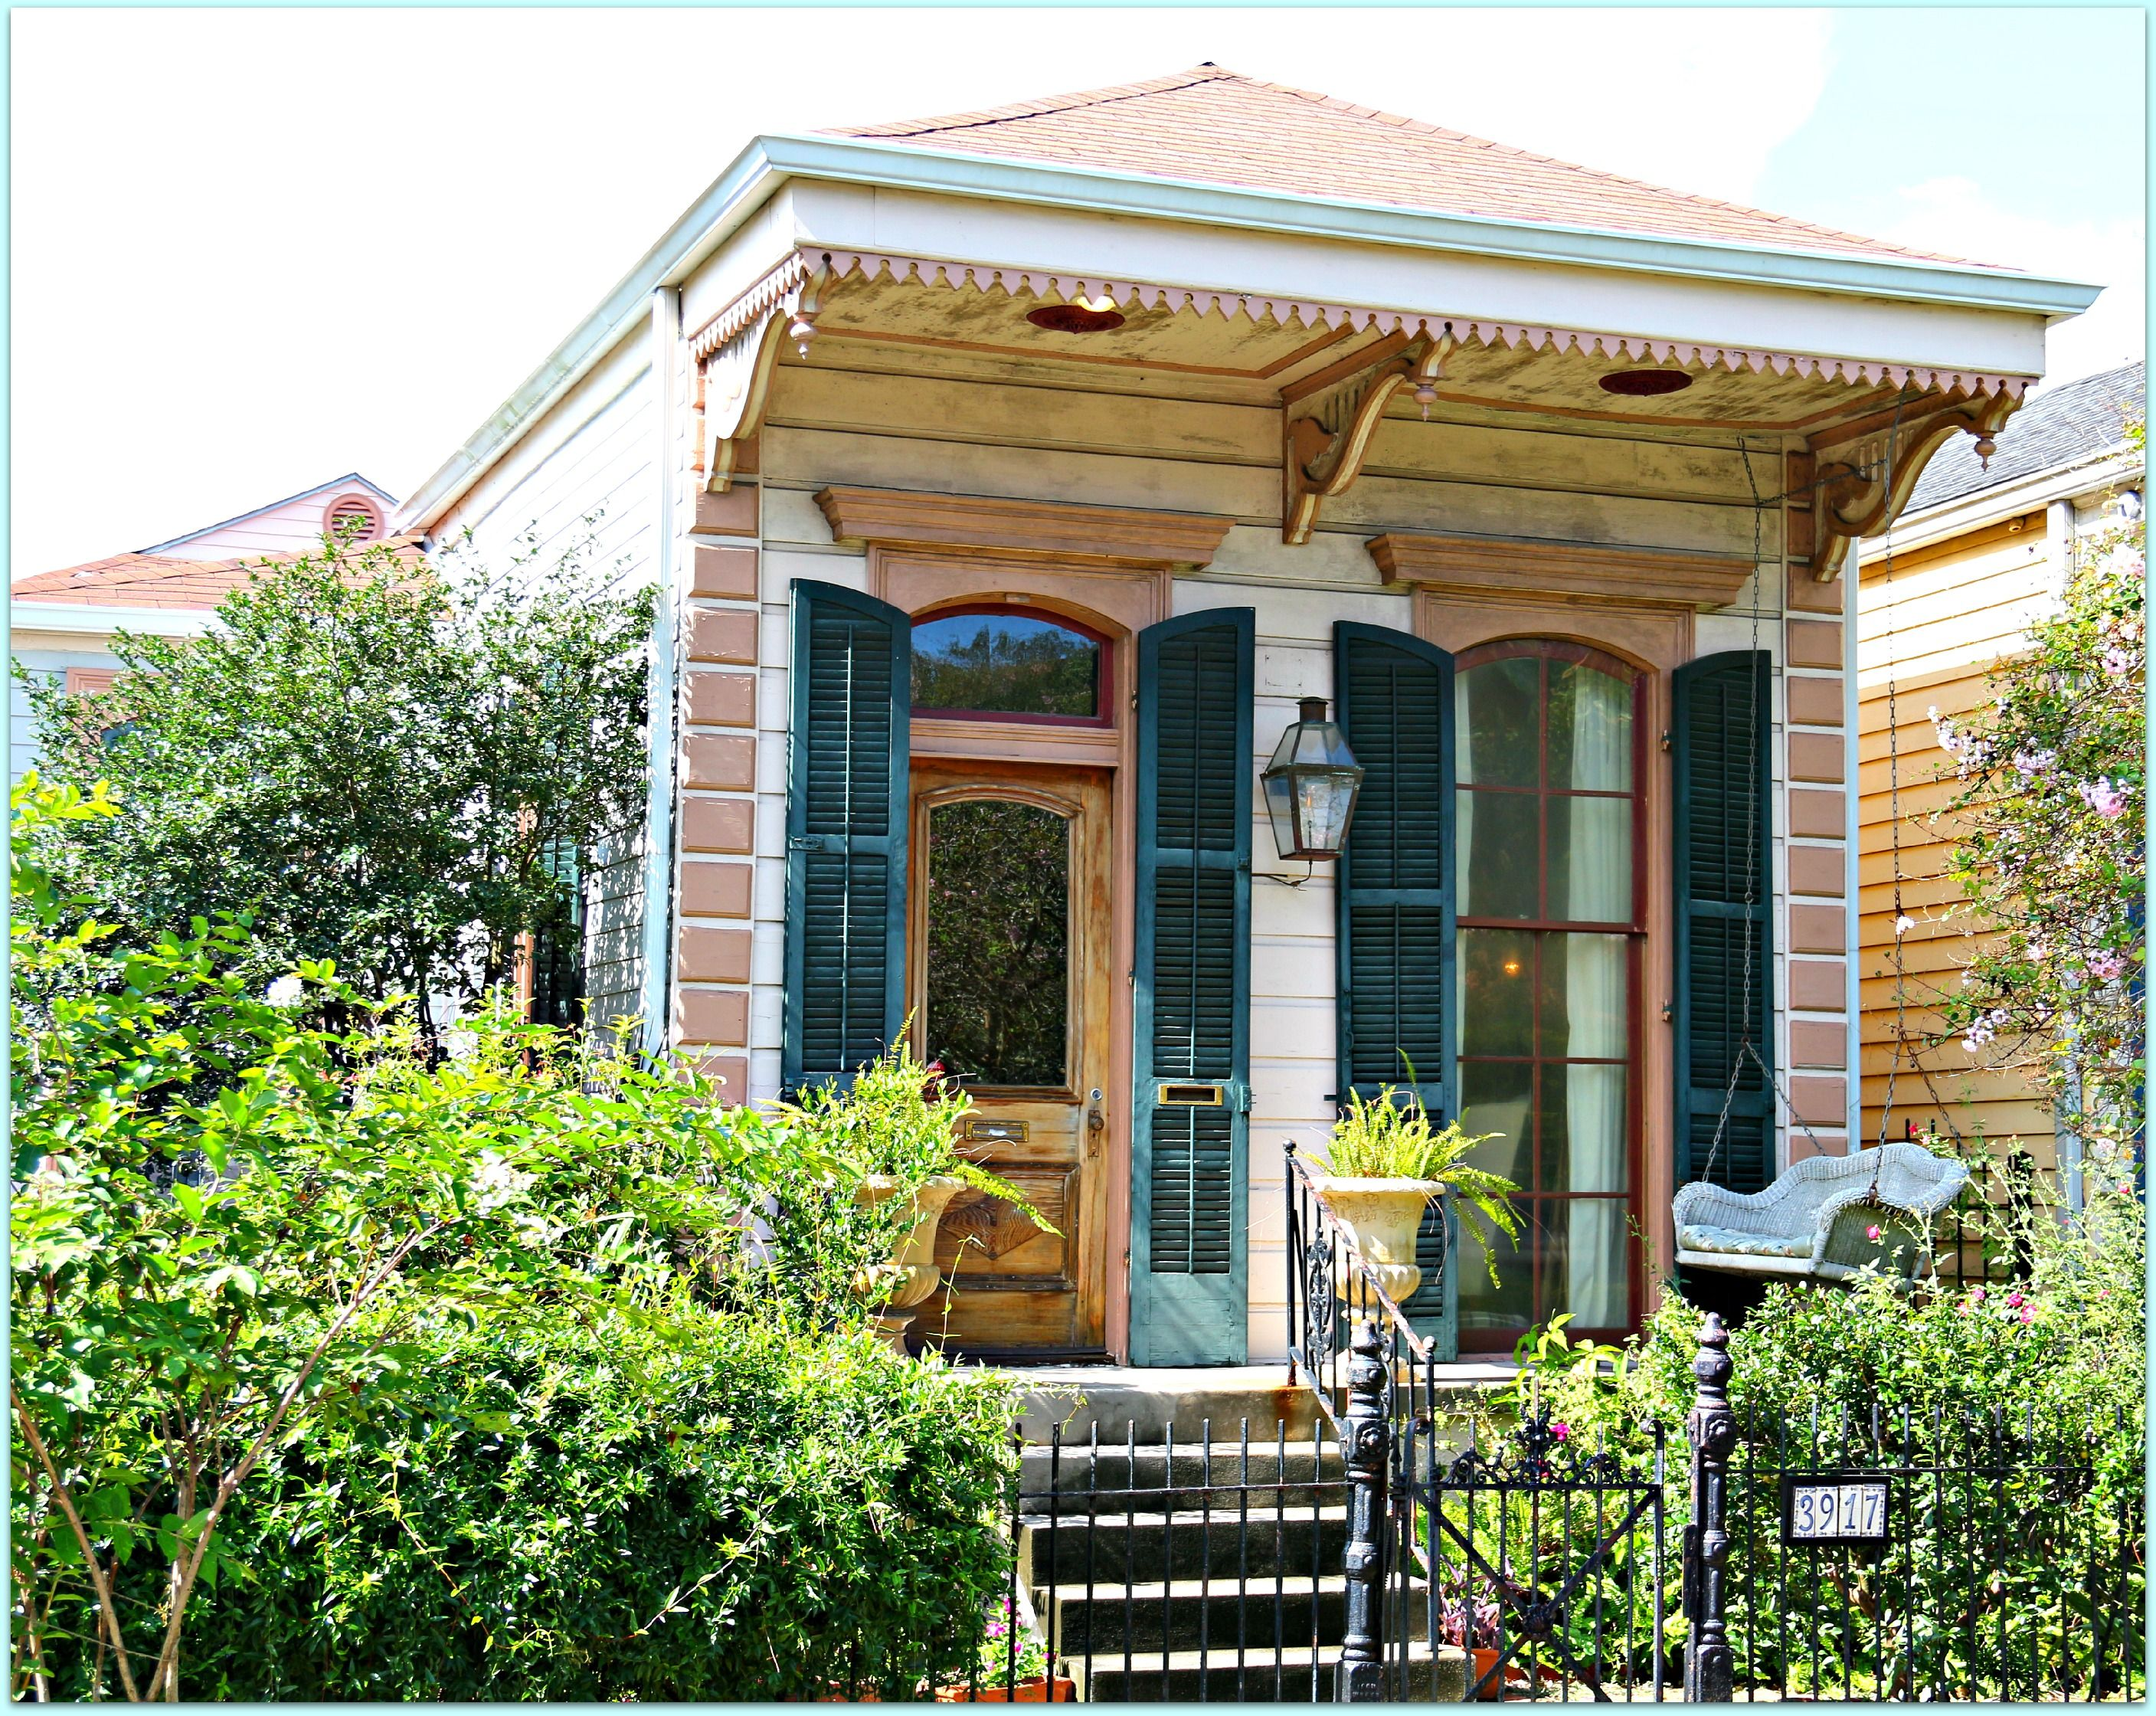 pictures of cottages New Orleans Homes and Neighborhoods